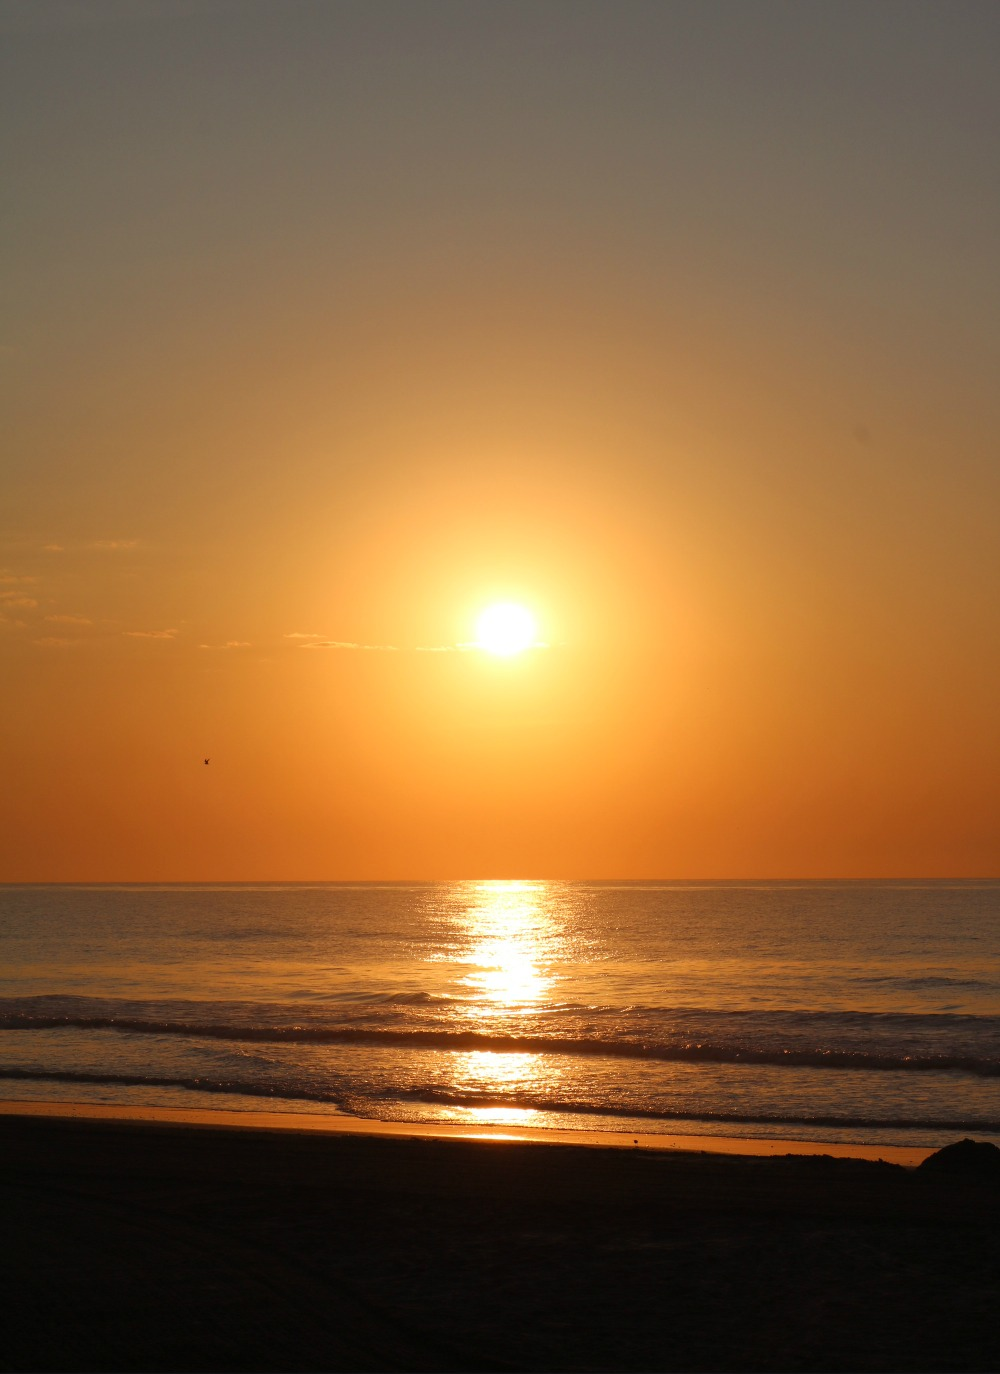 Jersey Shore Photo Diary I Sunrise Over the Atlantic Ocean #Travel #TravelBlogger #TravelPhotography